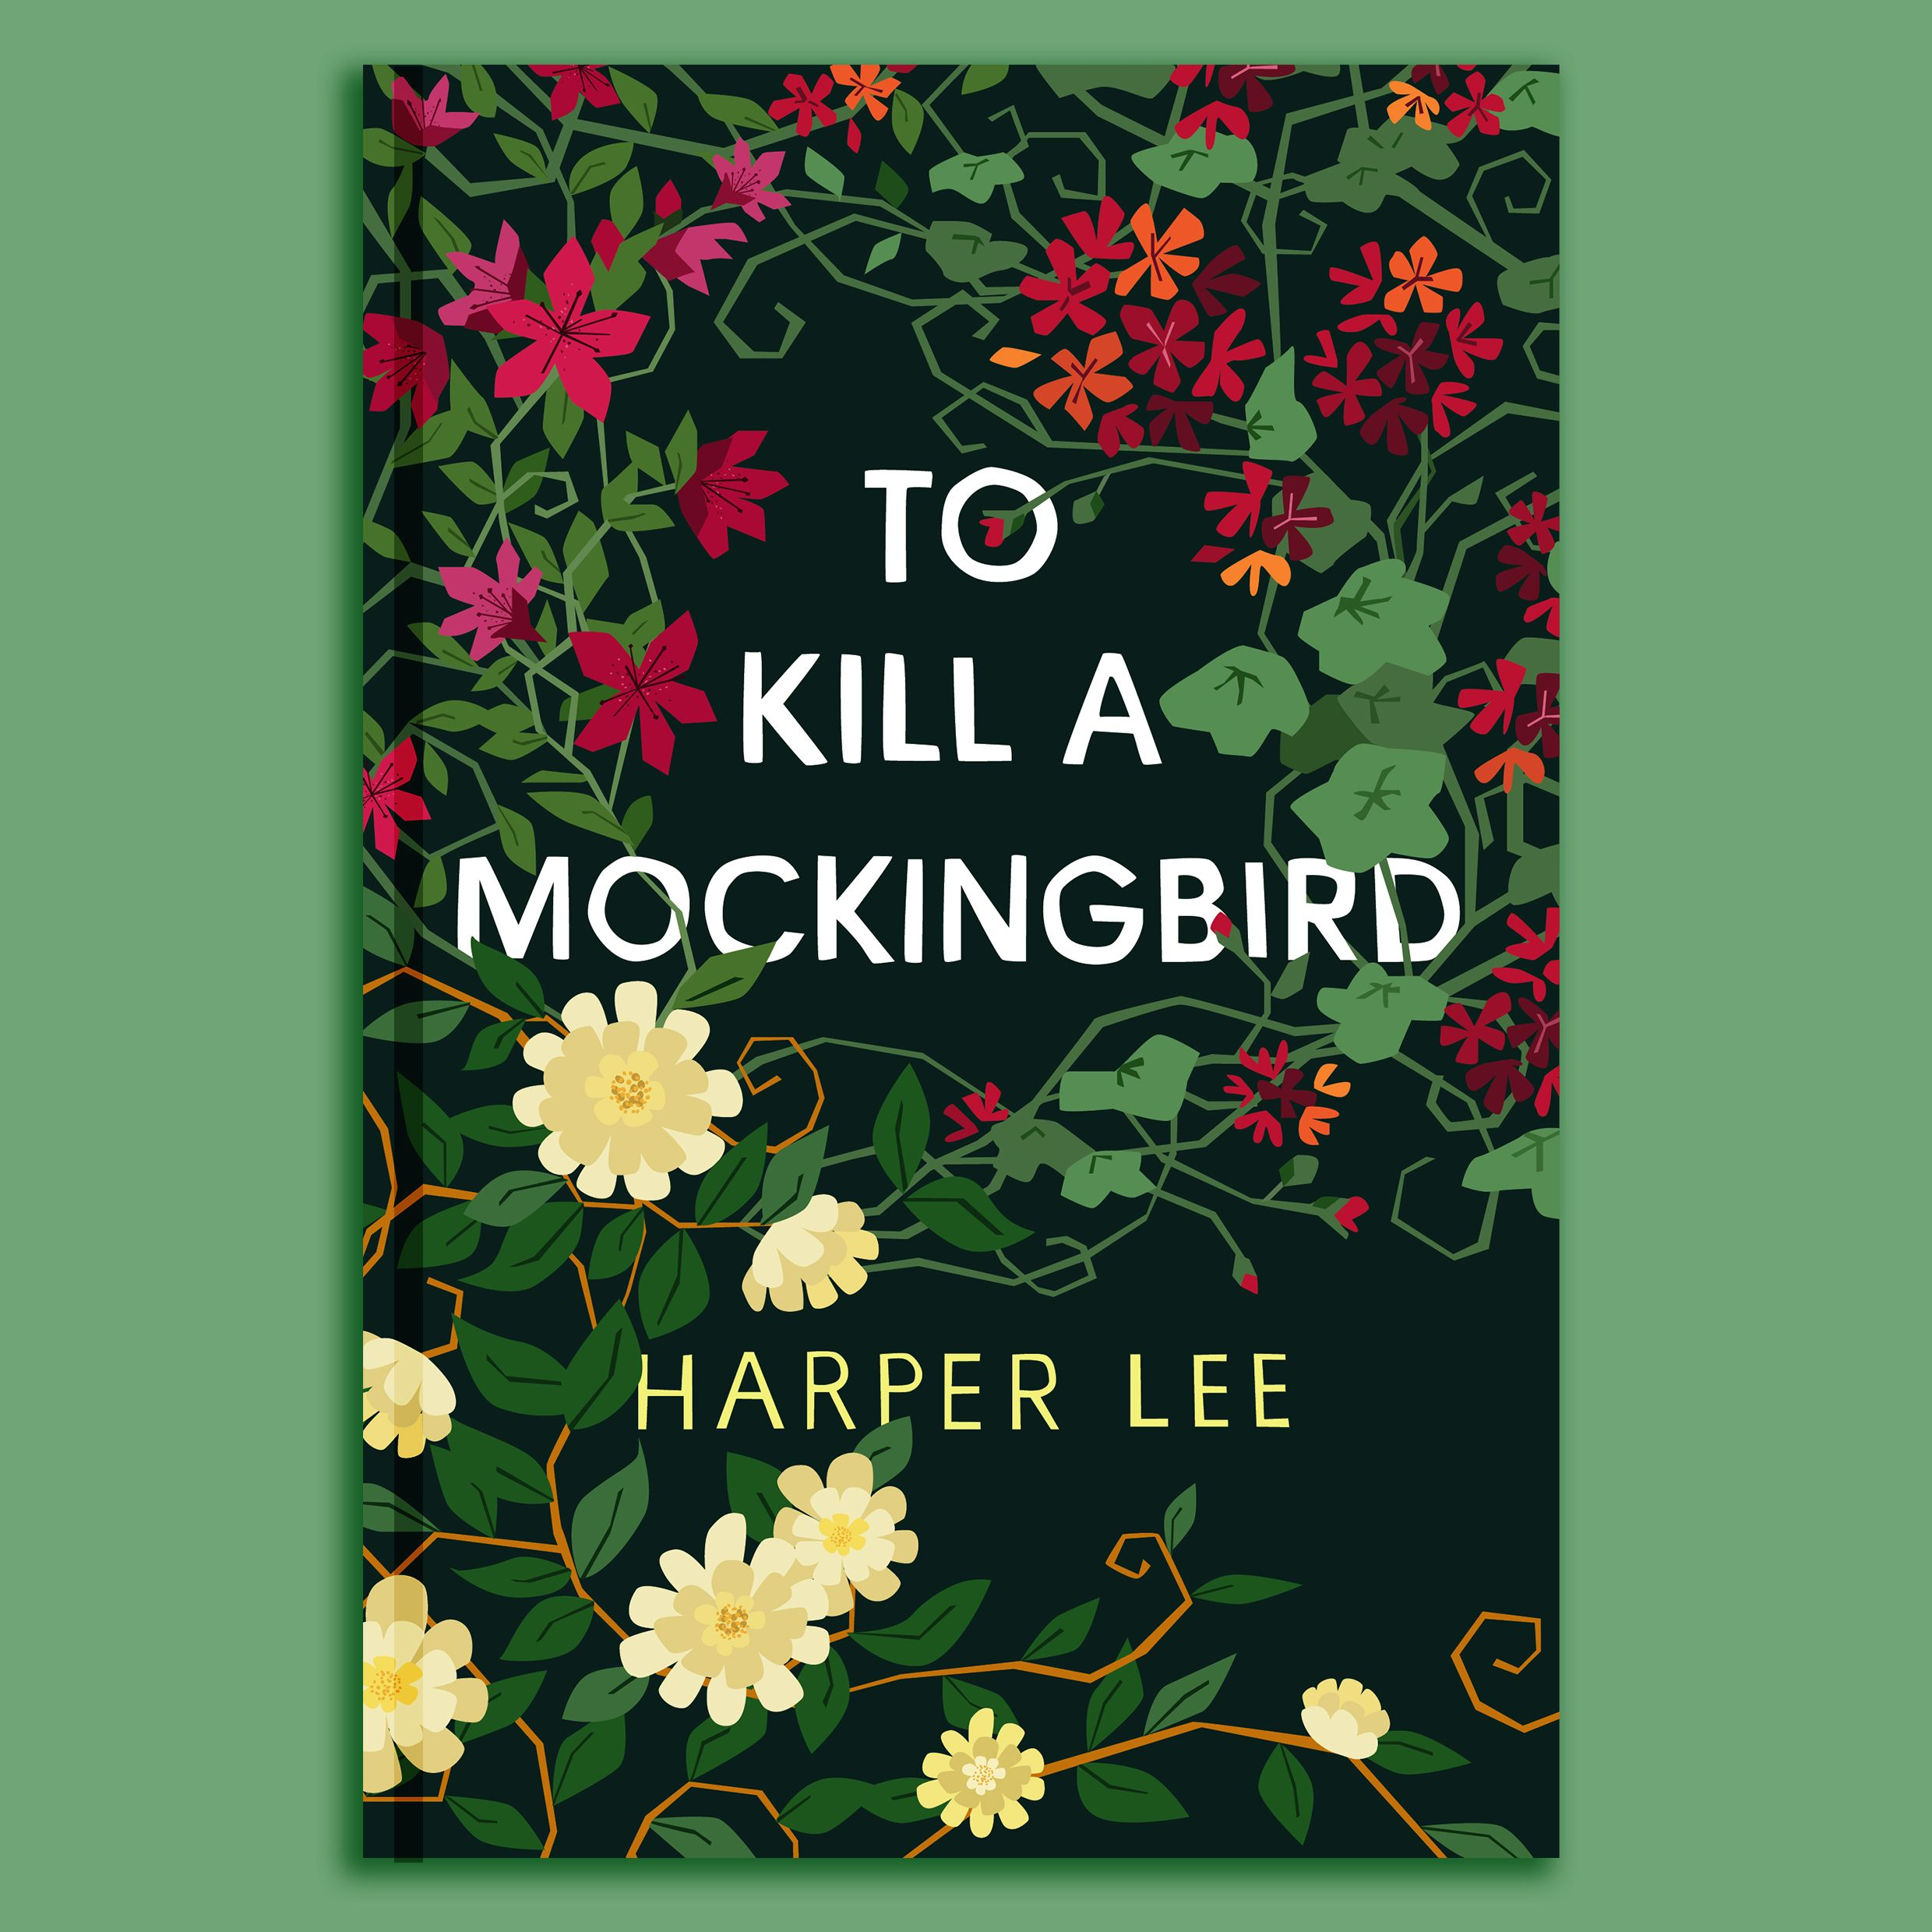 To Kill A Mockingbird Jacket Design By The Woodbine Workshop The Cover Focuses On The Relevance Of The Floral S Book Design Beautiful Book Covers Book Cover